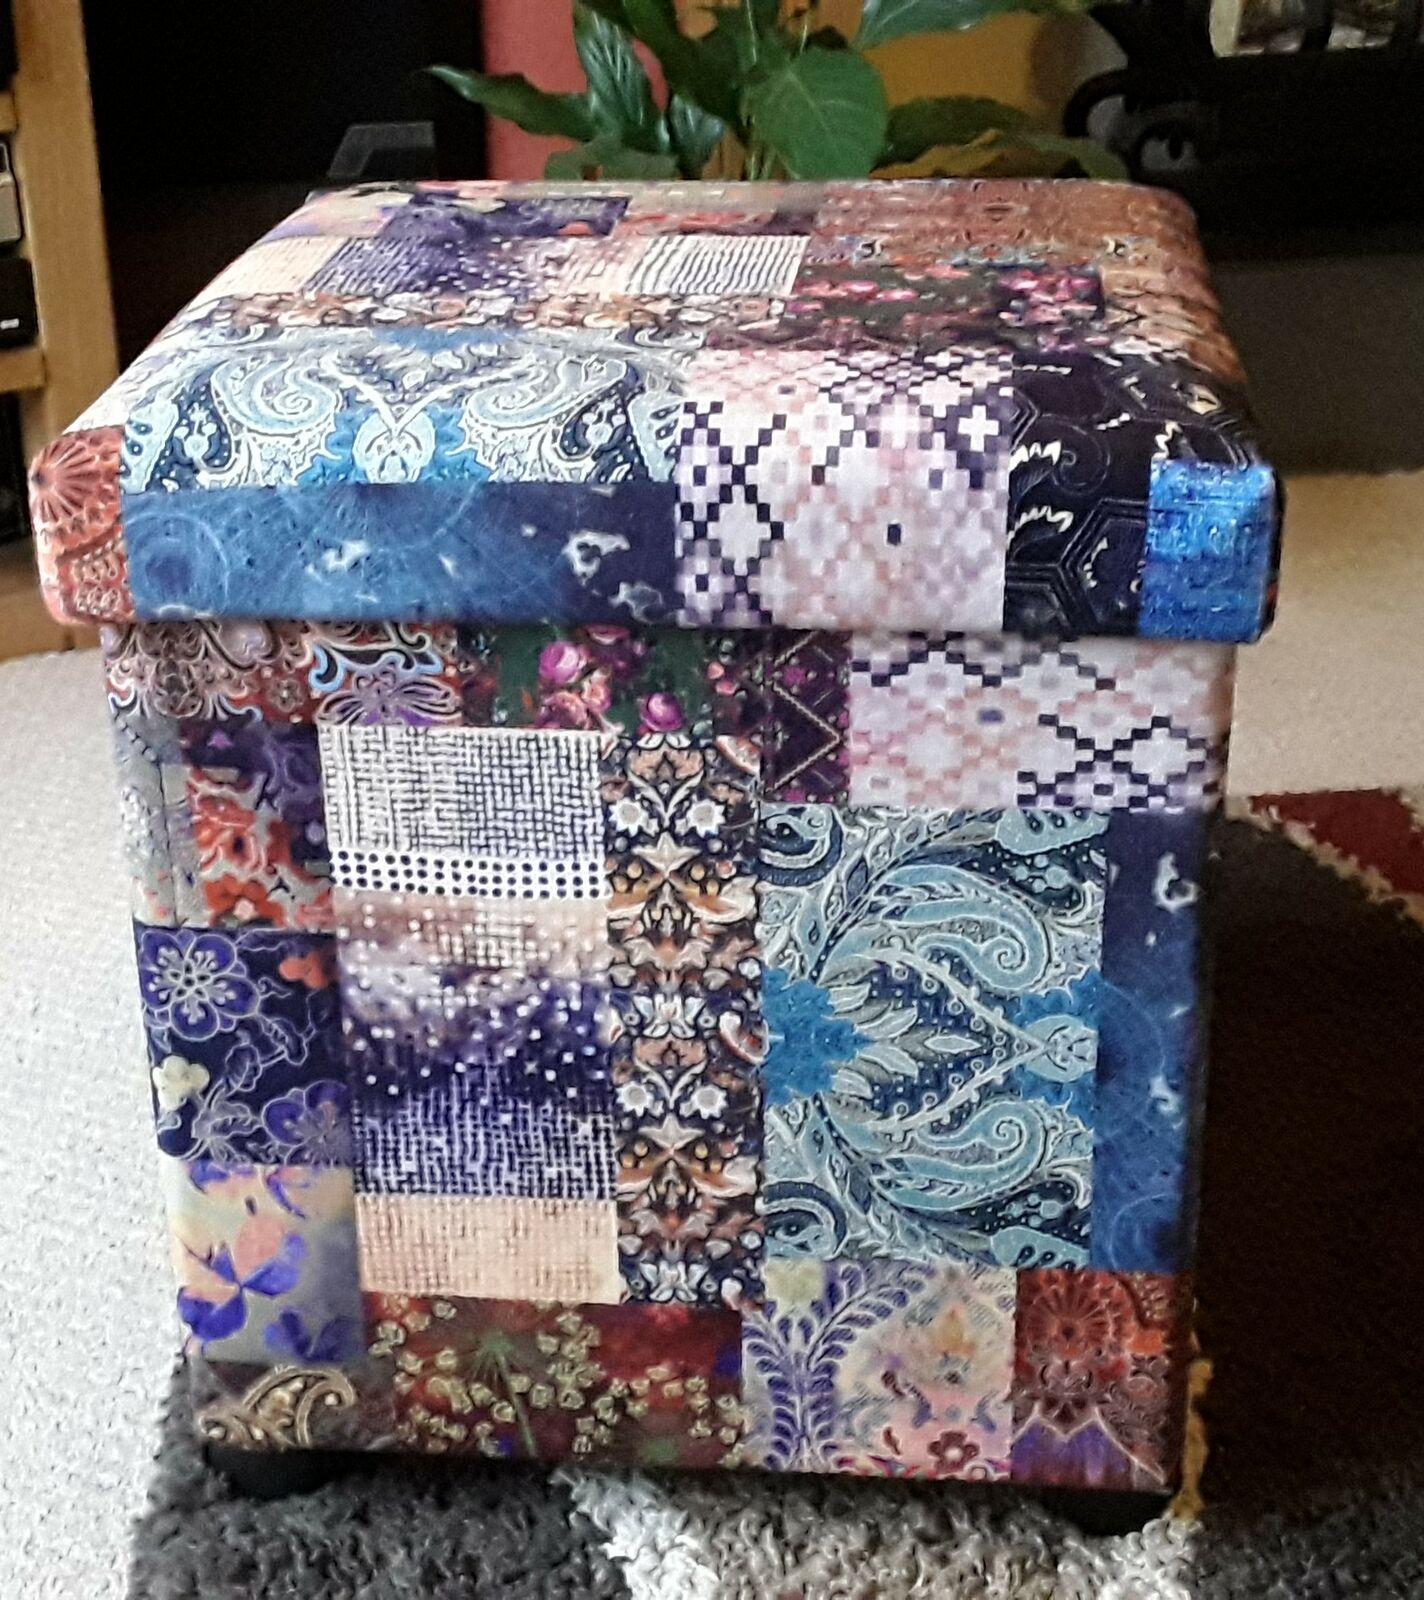 Sue Reupholstered A Footstool Using CTR-66 Freedom Patchwork